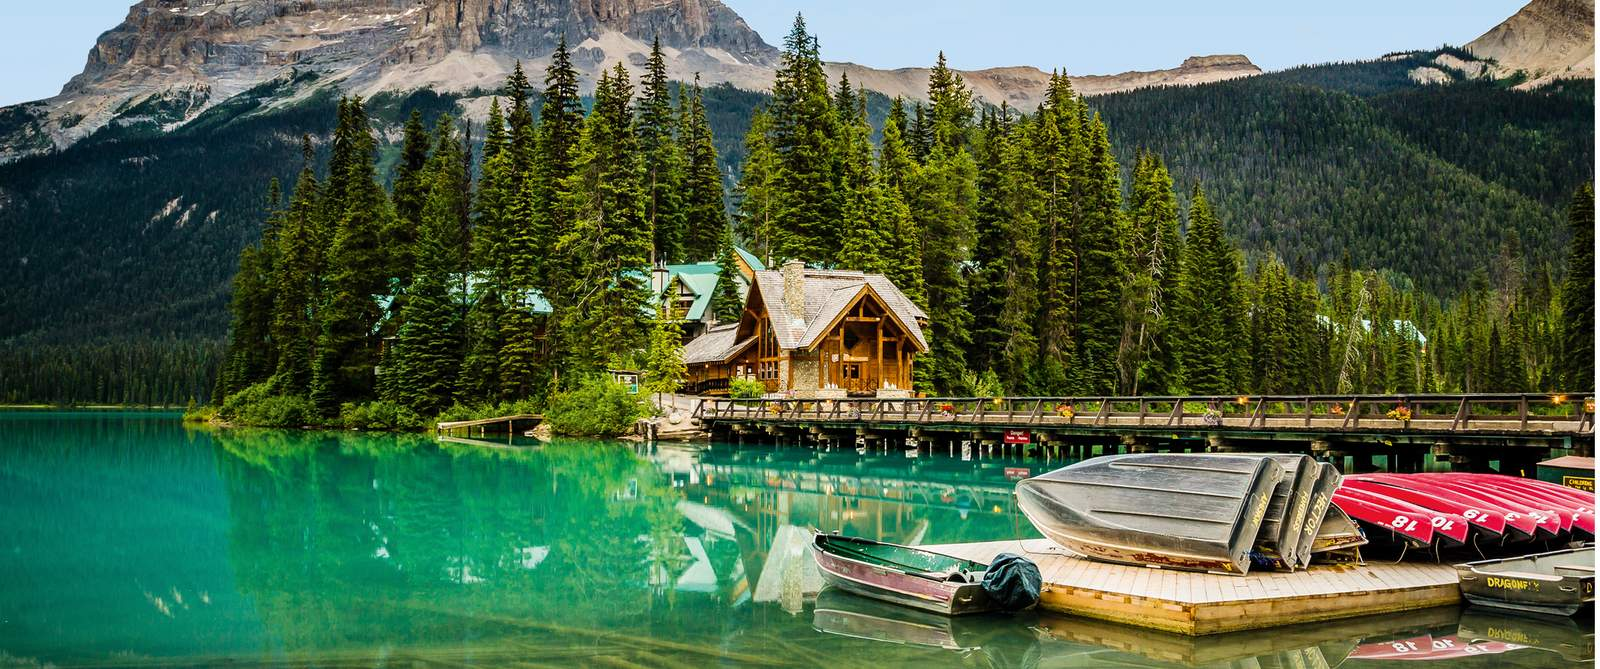 Emerald Lake Lodge im Yoho National Park